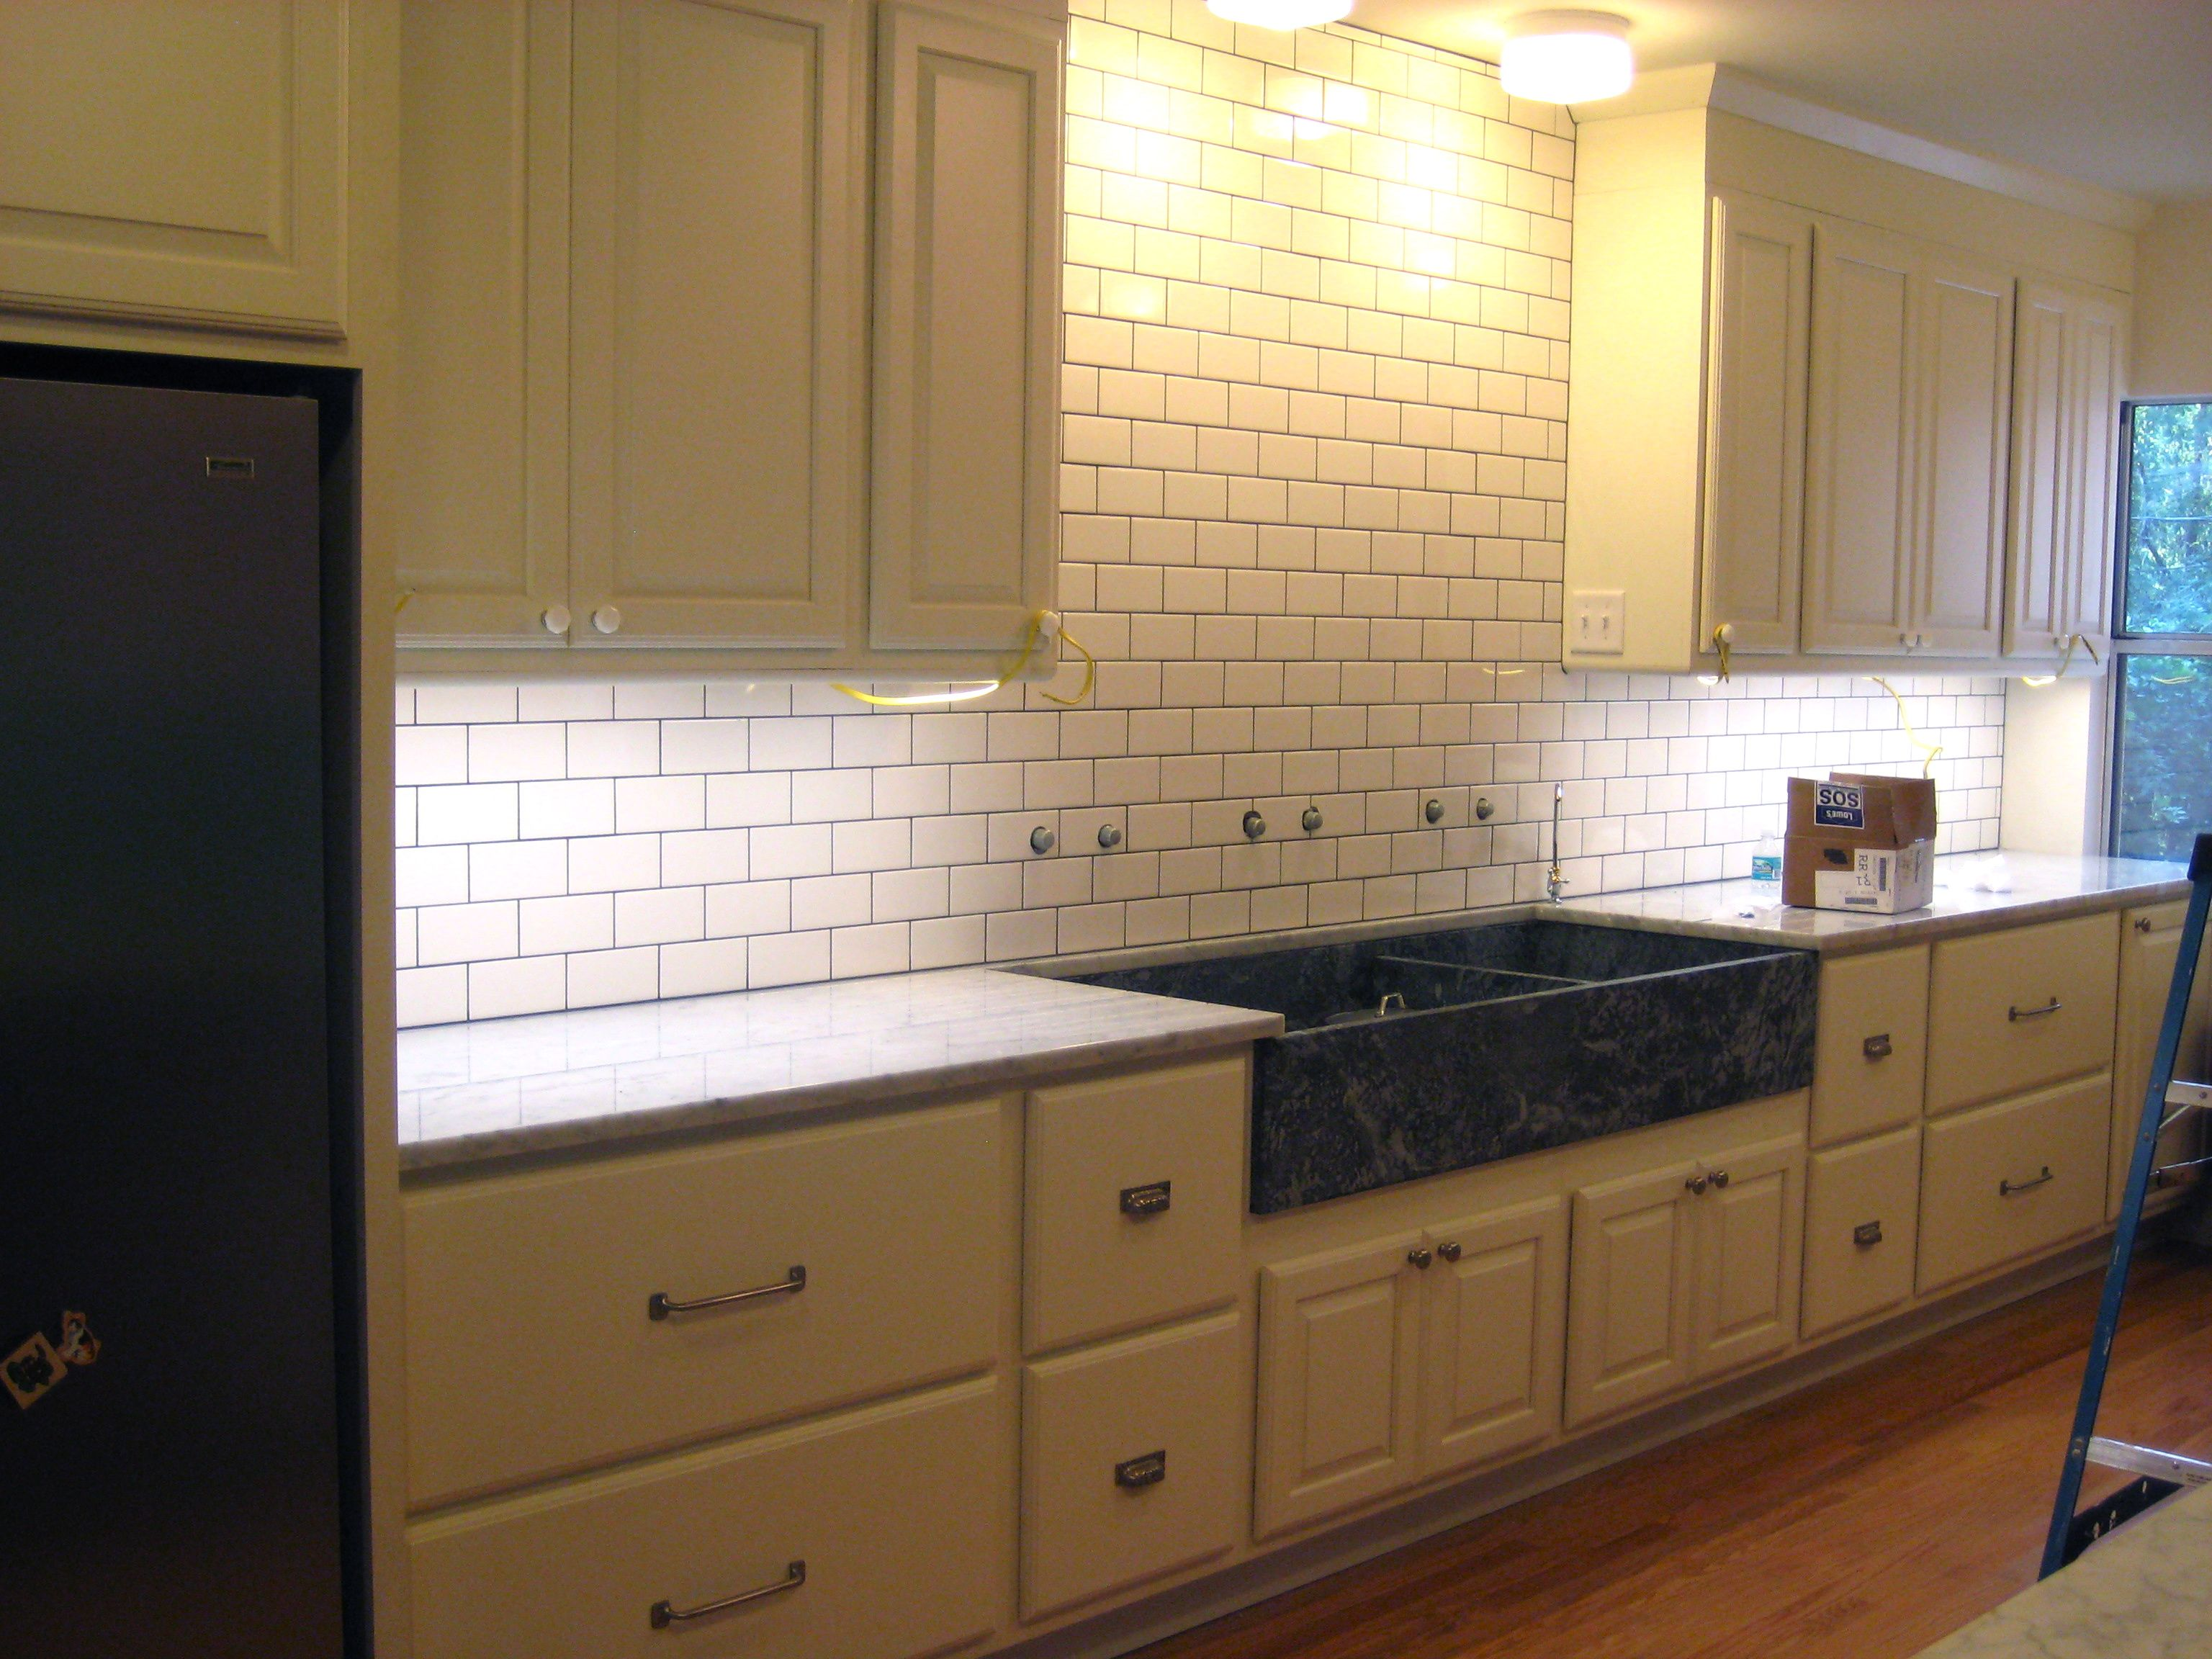 subway tile backsplash with expresso cabinets white subway tile subway tile backsplash with expresso cabinets white subway tile gray grout cream cabinets